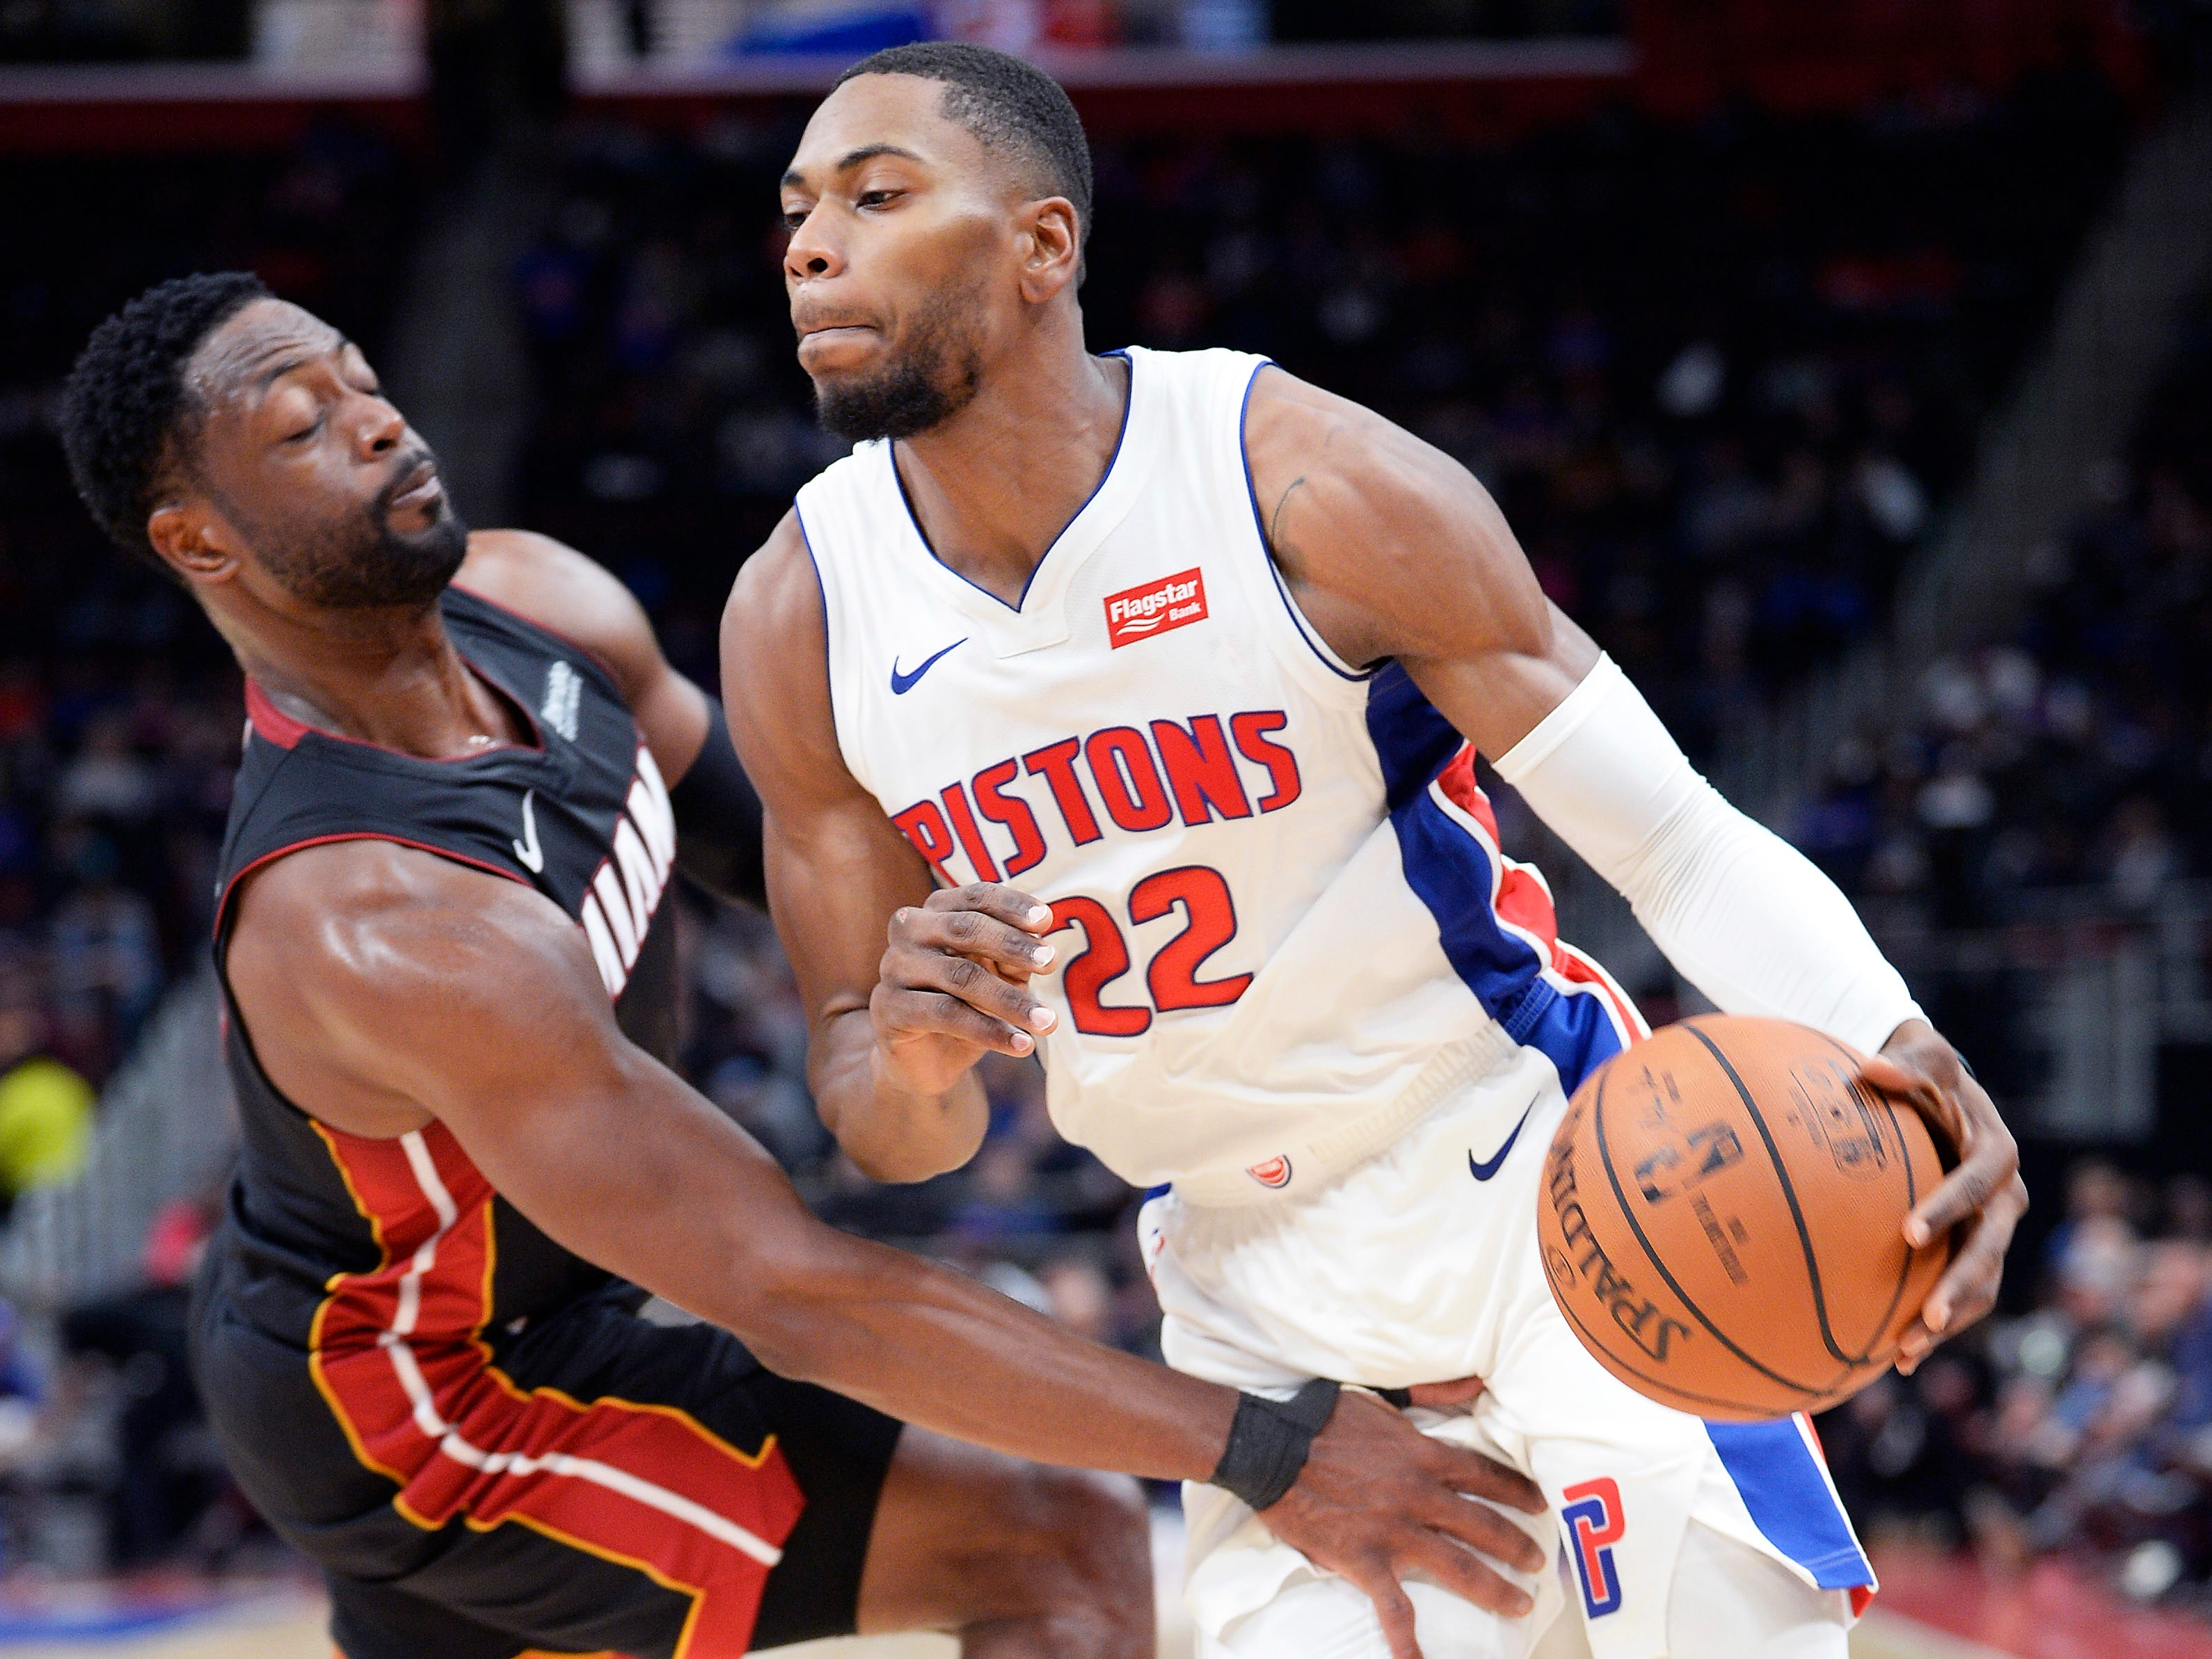 Glenn Robinson III -- Stats: 4.4 pts., 1.4 rebs., 28% 3FG in 28 games. Age: 25. He was supposed to be a better option at small forward, but after earning the starting job, an ankle injury sidelined him for a couple of weeks, putting the position back in flux. He doesn't have the same athleticism as early in his career, but he can help if he's more aggressive. Grade: C+